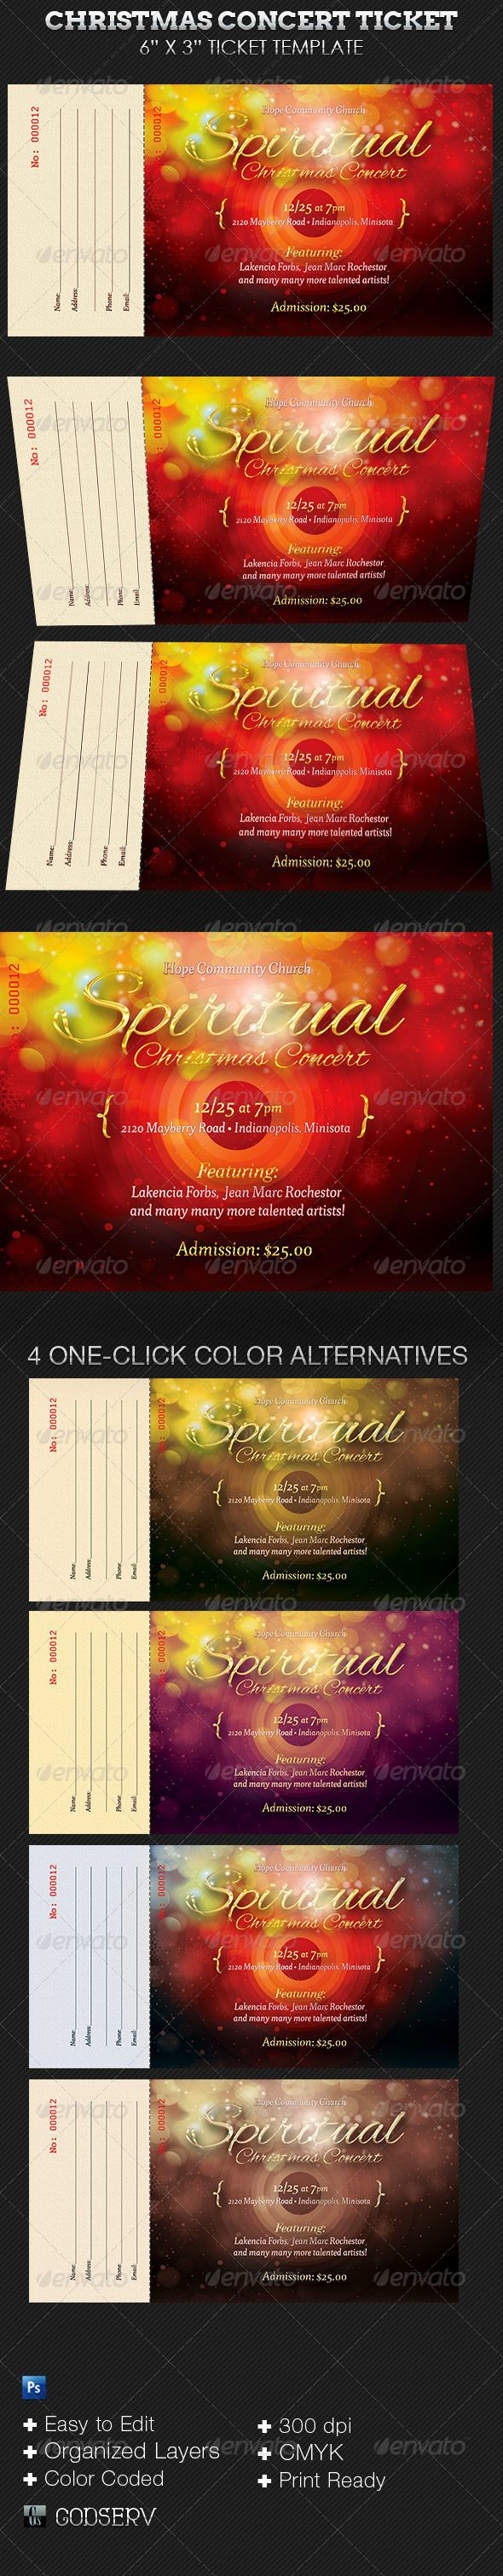 Concert Ticket Template Free Printable Alluring 14 Best Layoutstext And Images Images On Pinterest  Brochures .